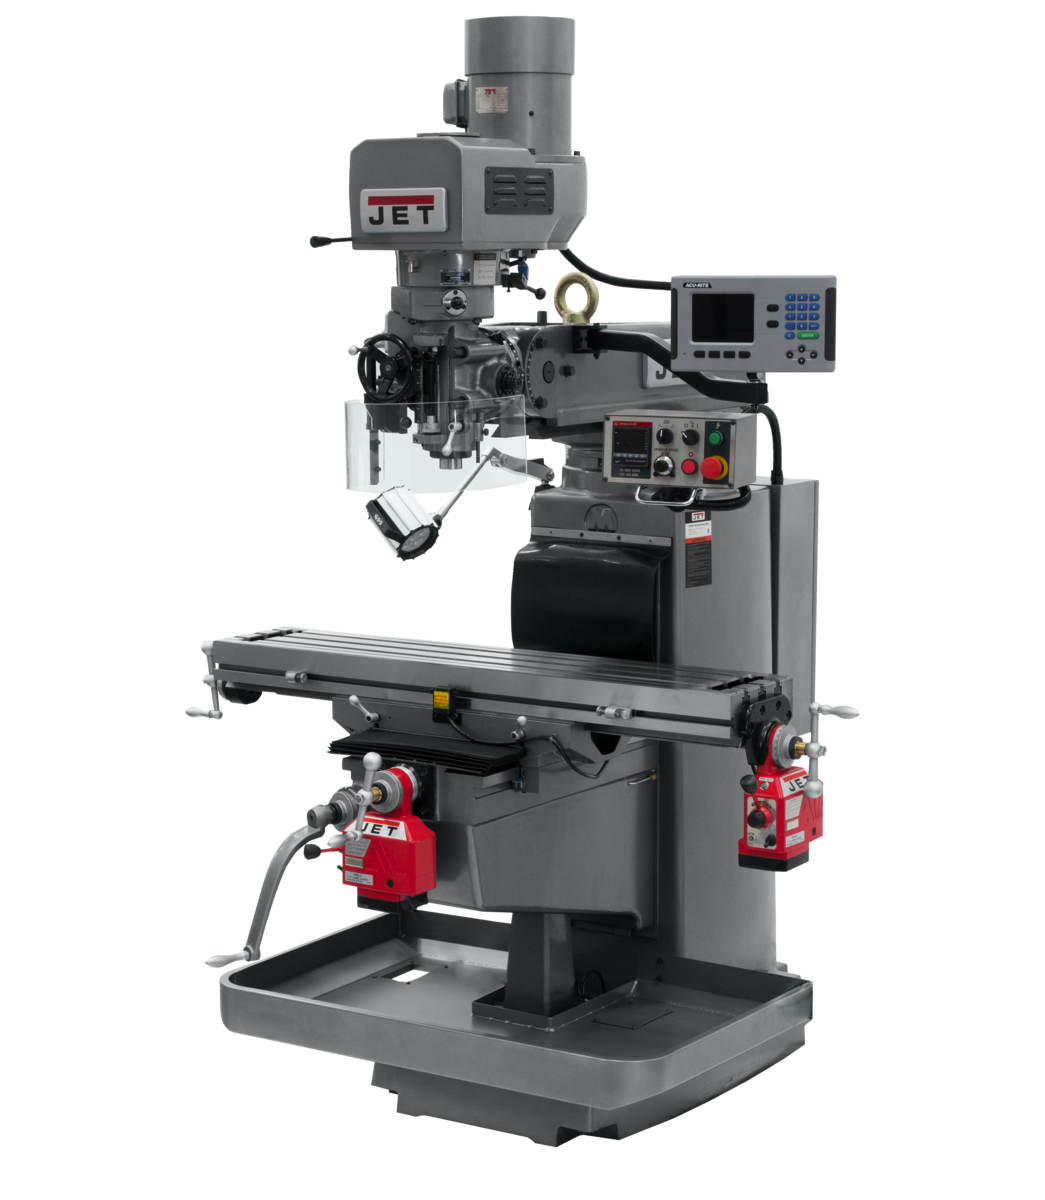 JTM-1050EVS2/230 Mill With 3-Axis Acu-Rite 203 DRO (Knee) With X and Y-Axis Powerfeeds